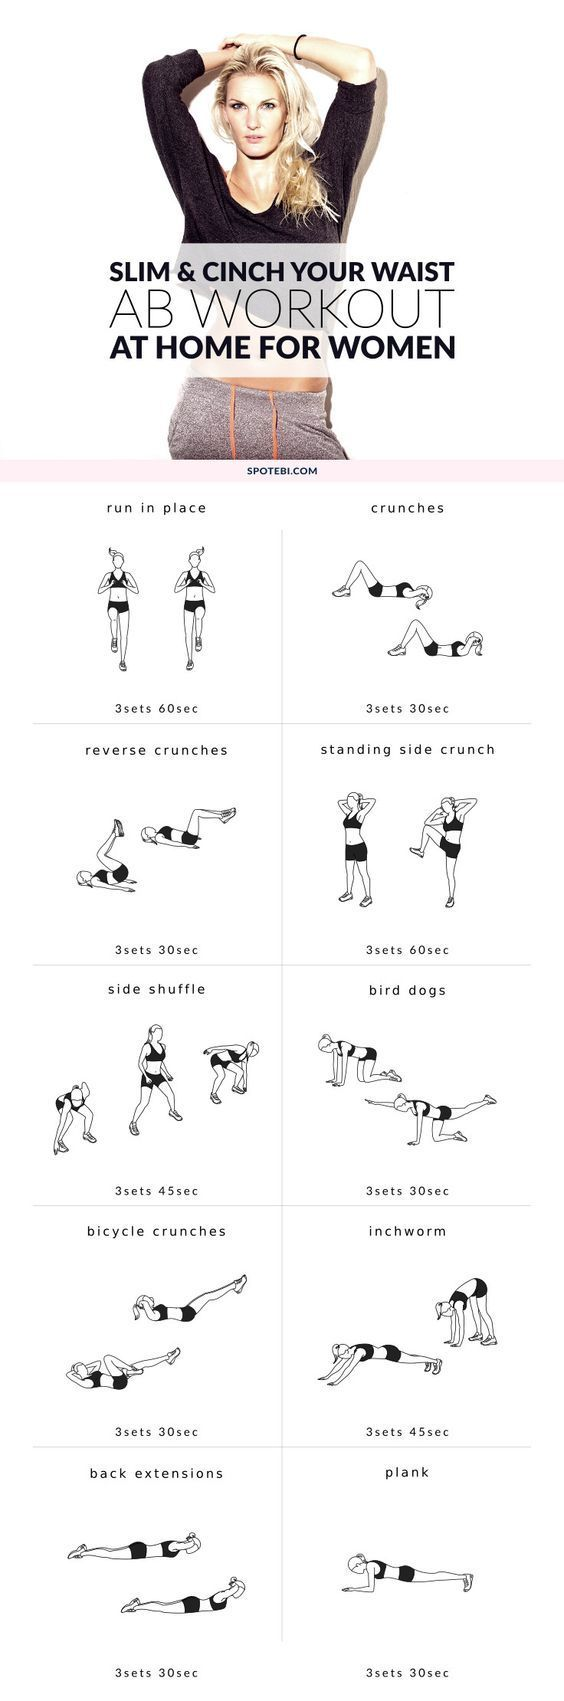 Challenge your midsection with this beginner ab workout for women. A complete core and cardio routine designed to trim and sculpt your abs, obliques and lower back. http://www.spotebi.com/workout-routines/beginner-ab-workout-for-women/: , Follow PowerRecipes For More.